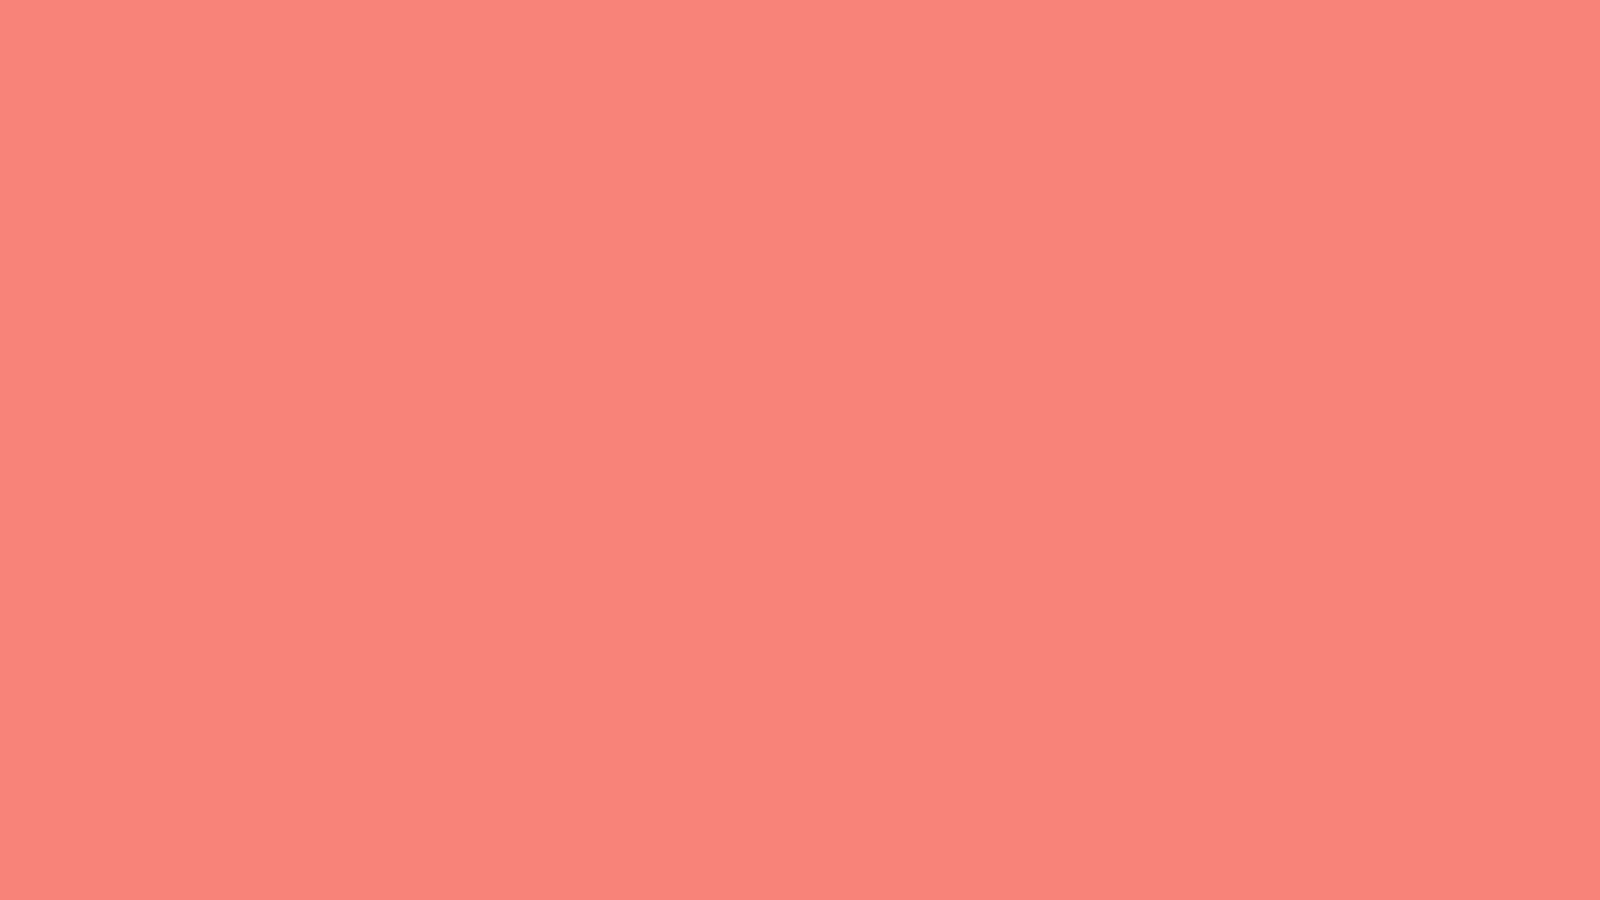 1600x900 Congo Pink Solid Color Background